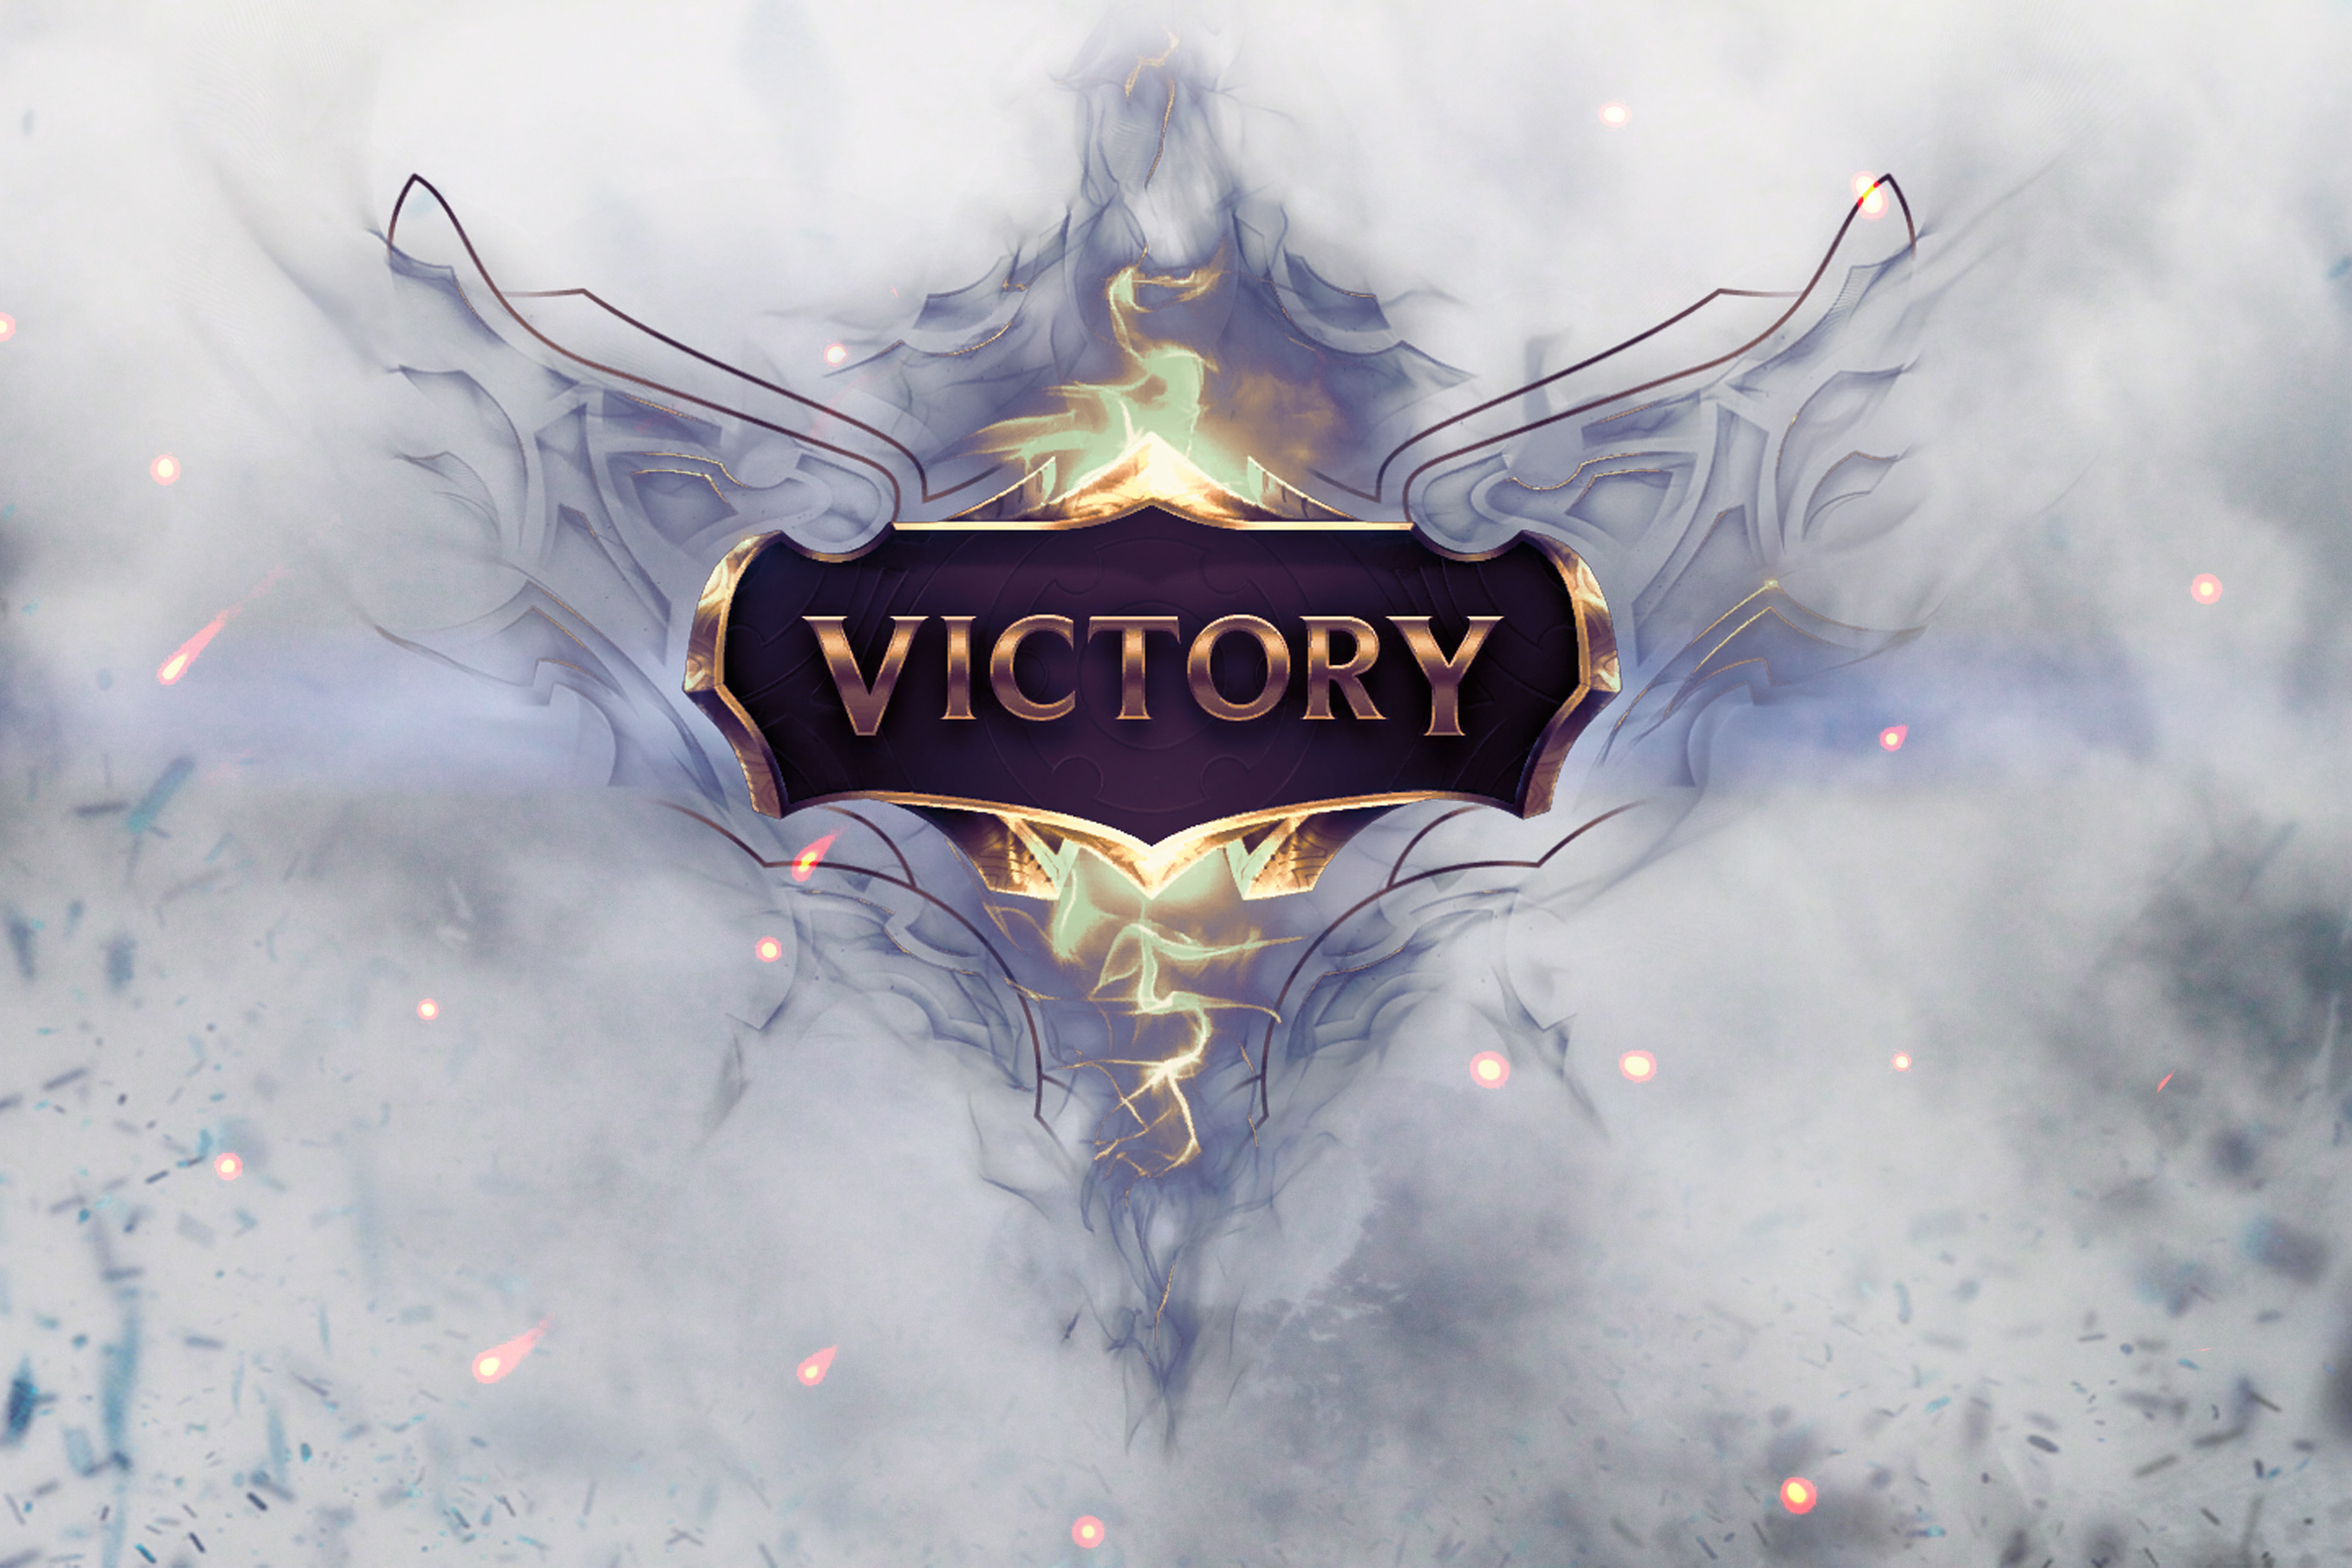 Victory ! wallpaper